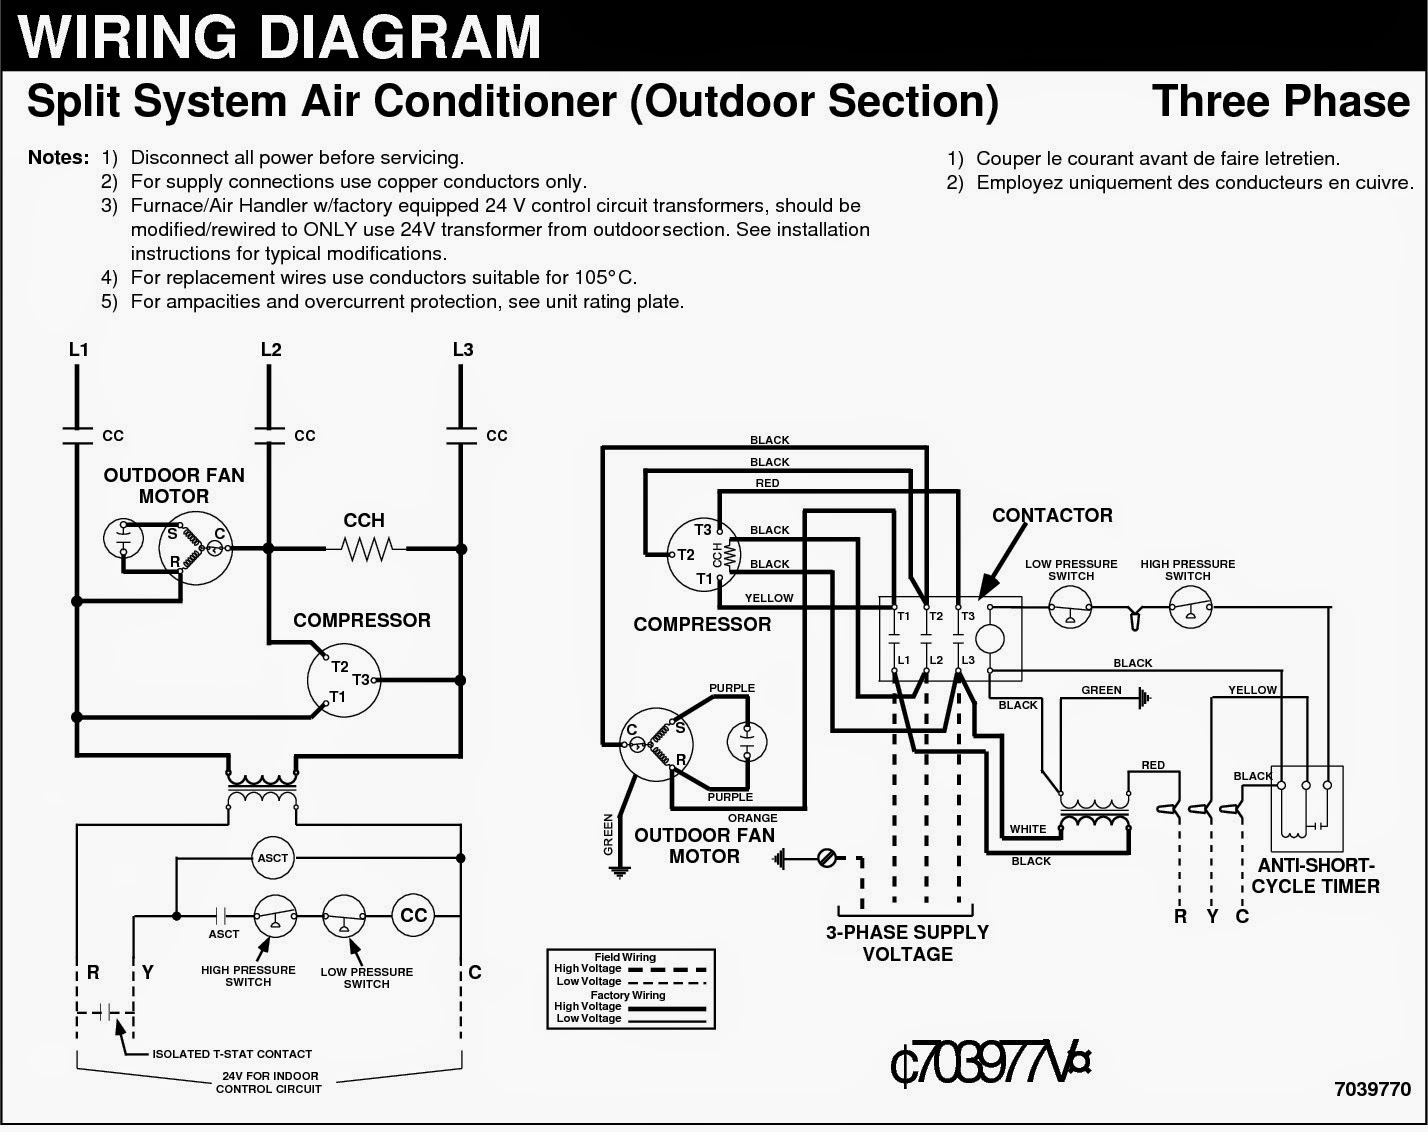 hvac wiring diagram hvac image wiring diagram air conditioner compressor wiring diagram air wiring diagrams on hvac wiring diagram